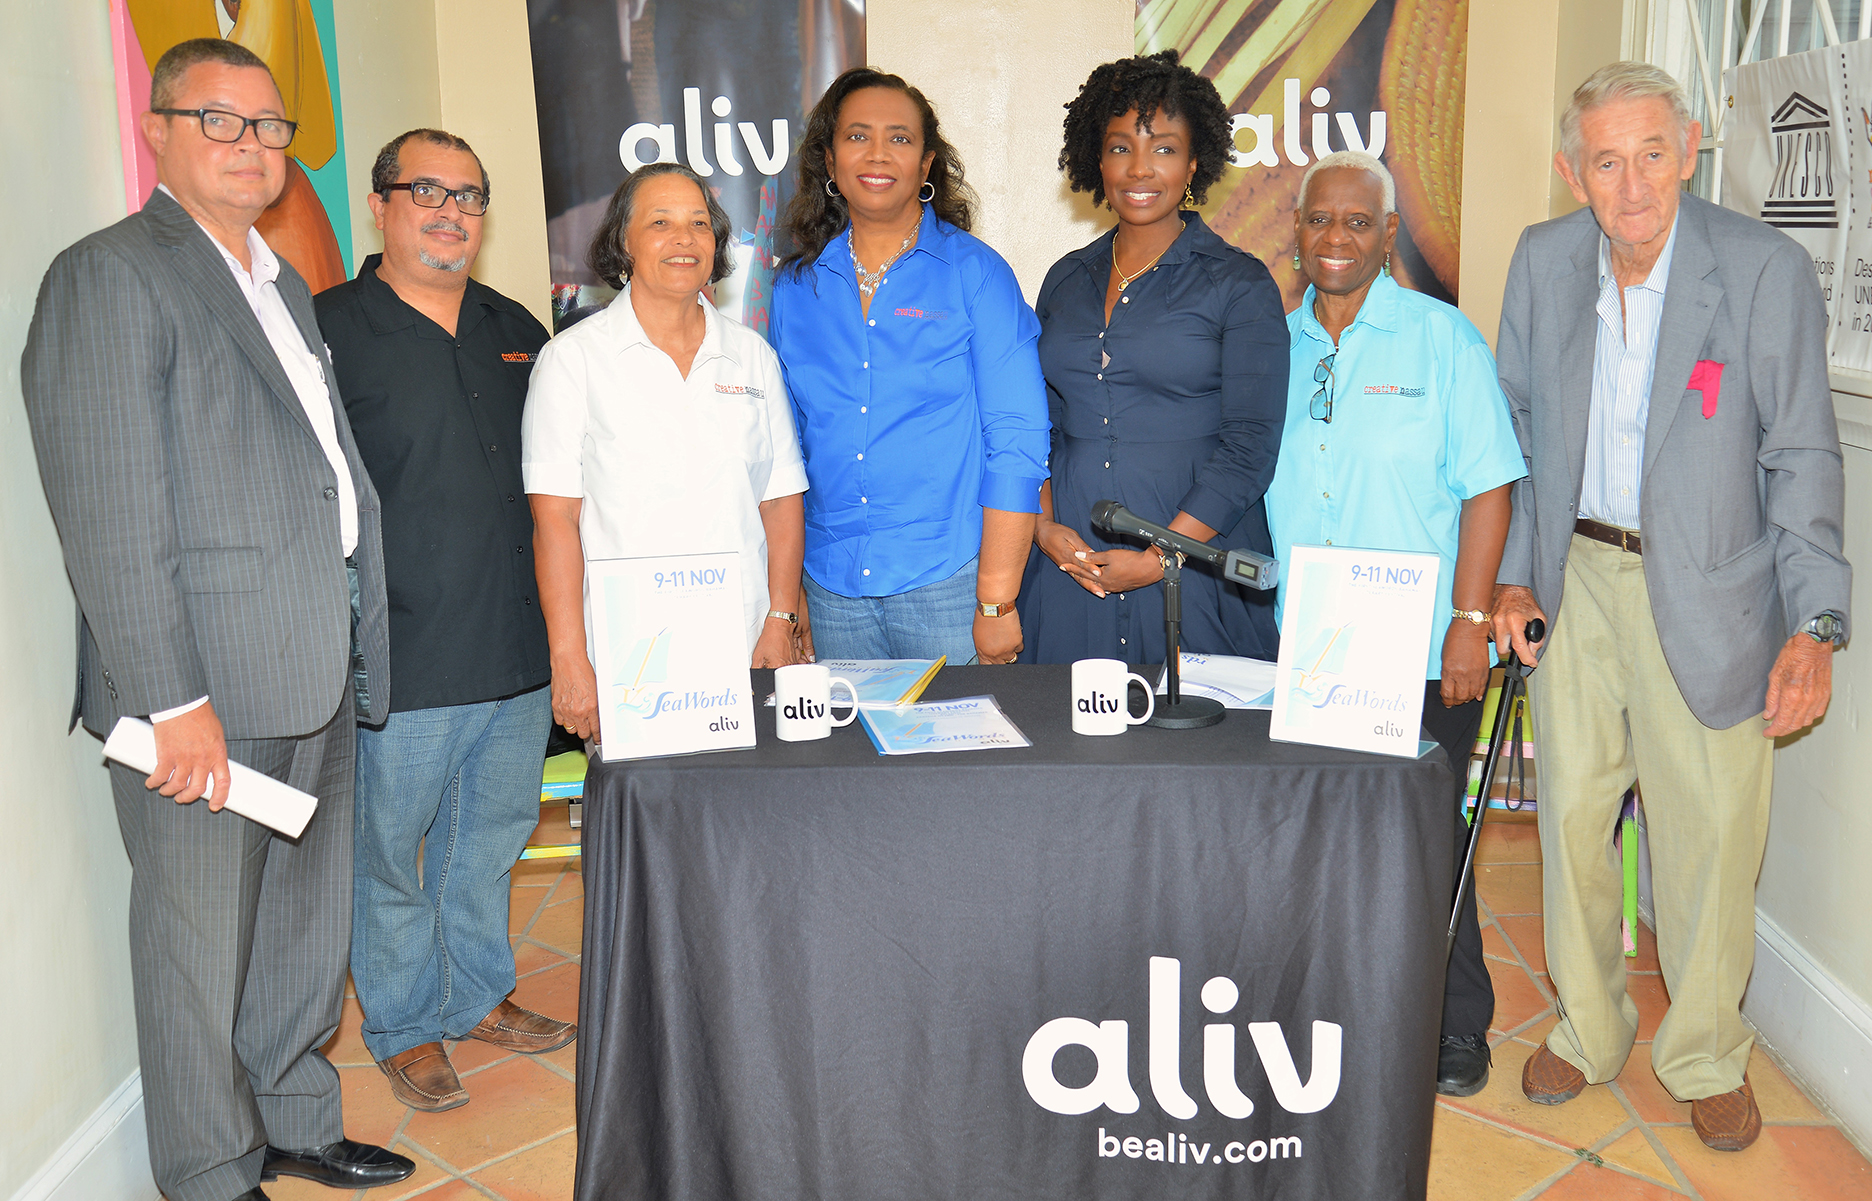 Press Conference to announce the official launch of the SeaWords Bahamas Literary Festival. Doongalik Studios, June 6, 2018.(Left to right) Paul McWeeney, President, Sunshine Insurance (Arawak Homes—Diamond Sponsor); Neko Meicholas, Communications, Creative Nassau; Pamela Burnside, President, Creative Nassau; Patrica Glinton-Meicholas, VP, Creative Nassau; Gravette Brown, Chief Aliv Commercial Officer (Aliv, Title Sponsor); Rosemary Hanna, Member, Creative Nassau and Richard Coulson, Member, Organizing Committee,SeaWords Bahamas.